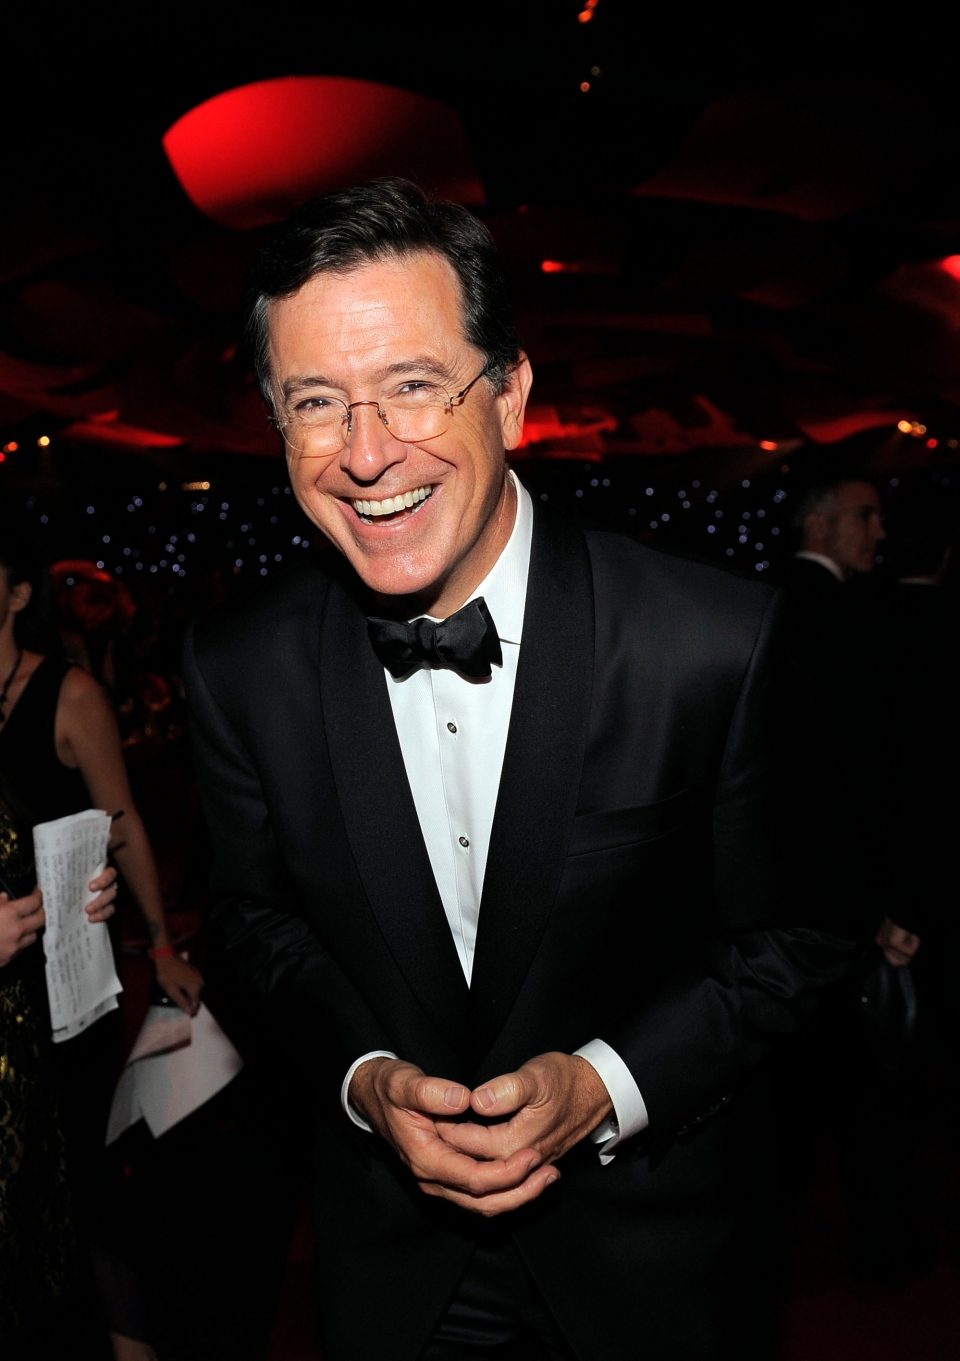 TV personality Stephen Colbert at the 64th Primetime Emmy Awards Governors Ball in Los Angeles, Sept. 23, 2012. (AP / Chris Pizzello)